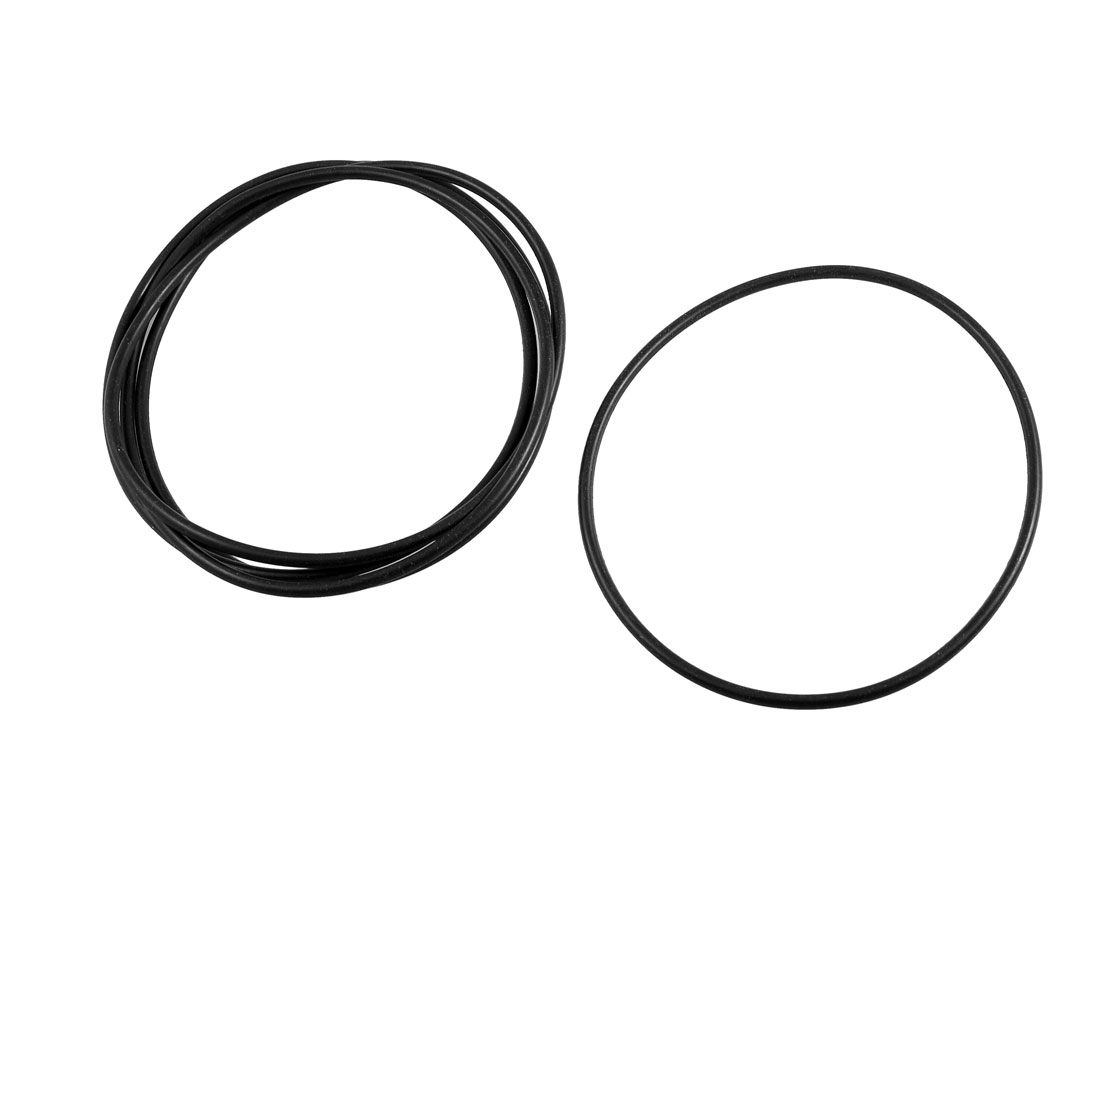 5 x 100mm External Dia 3.1mm Thickness Mechanical Rubber Oil Seal O Ring Gaskets